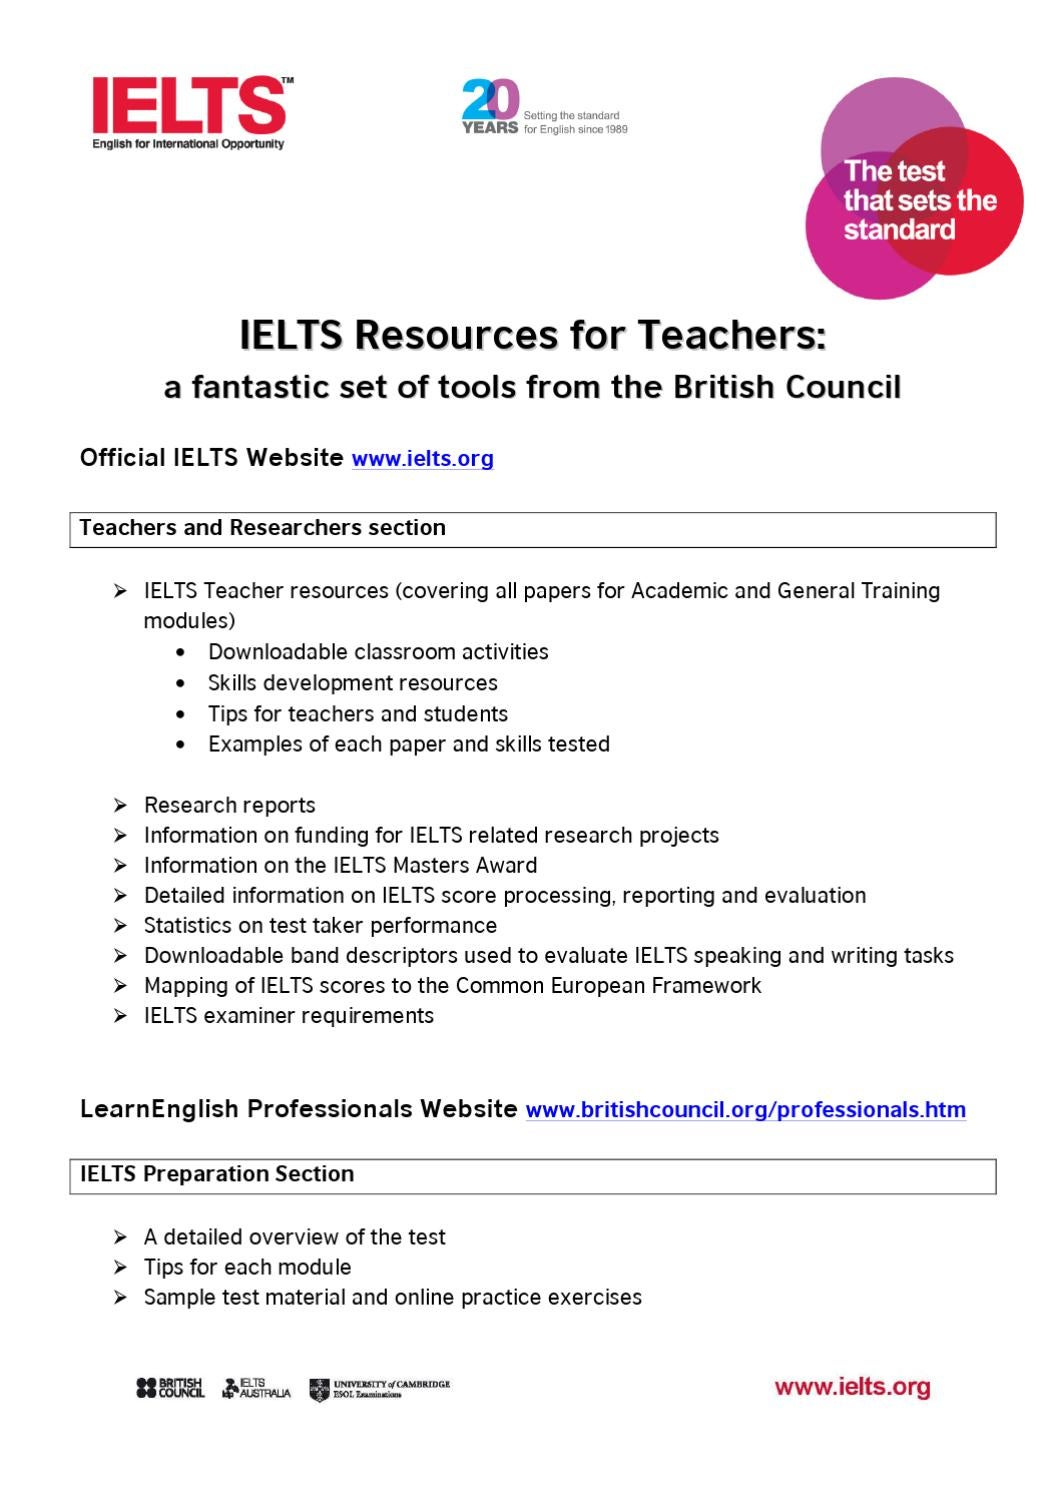 IELTS Resources for Teachers by British Council - issuu